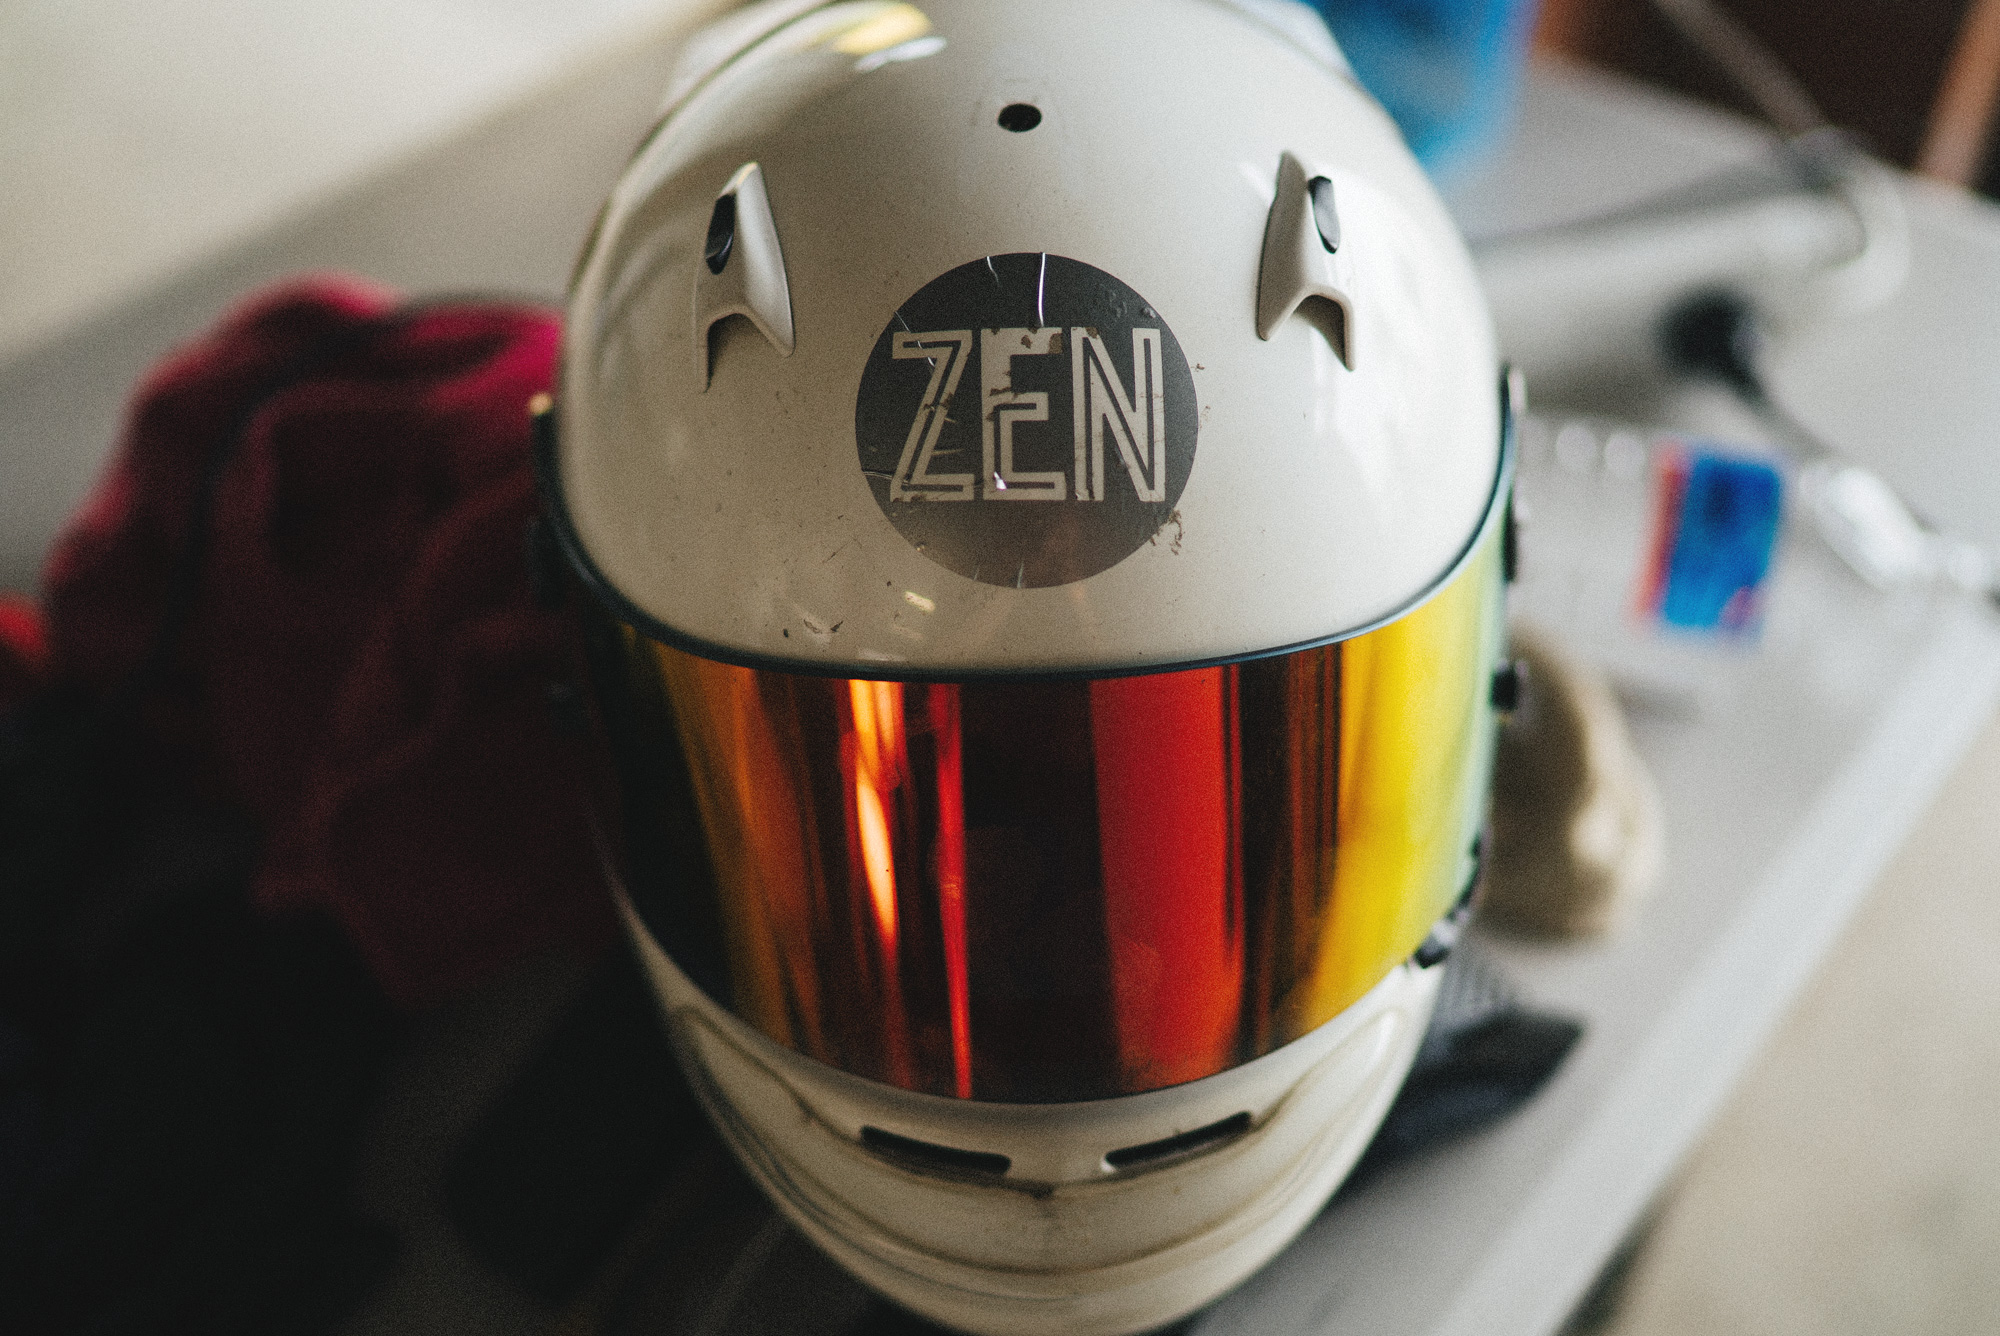 rent_helmet